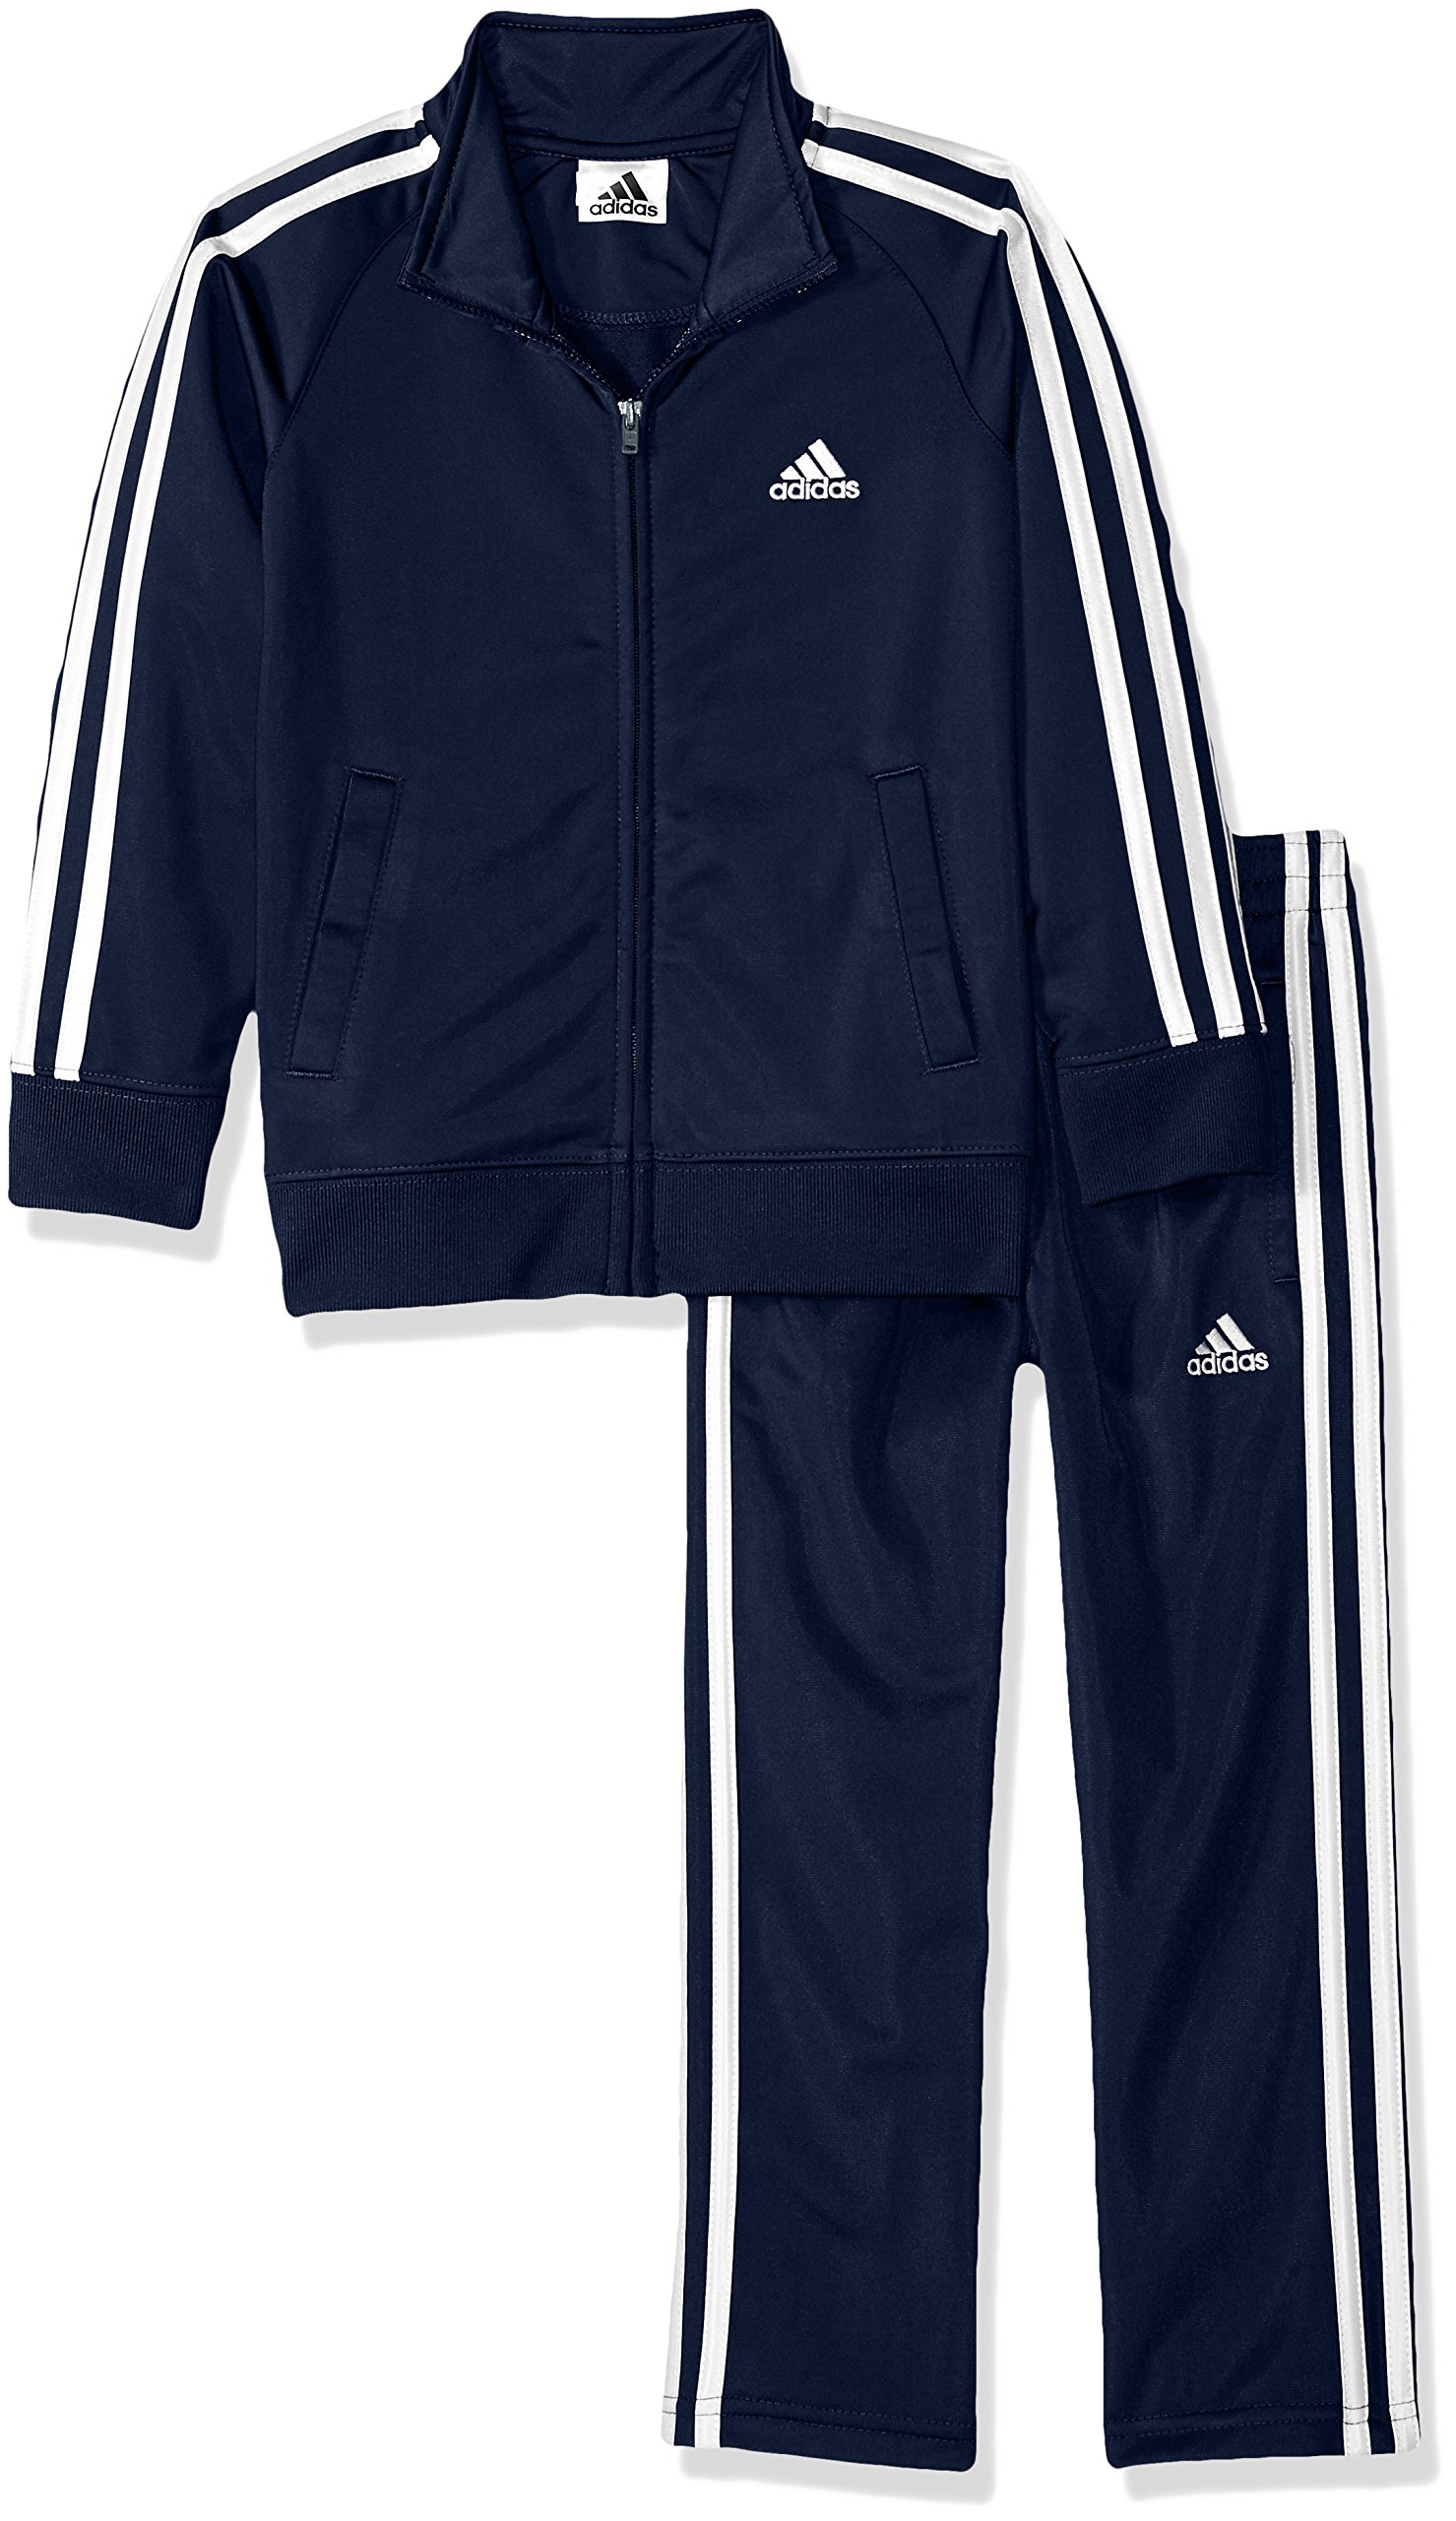 adidas Boys' Little Tricot Jacket and Pant Set, Navy/Whiteo, 7 by adidas